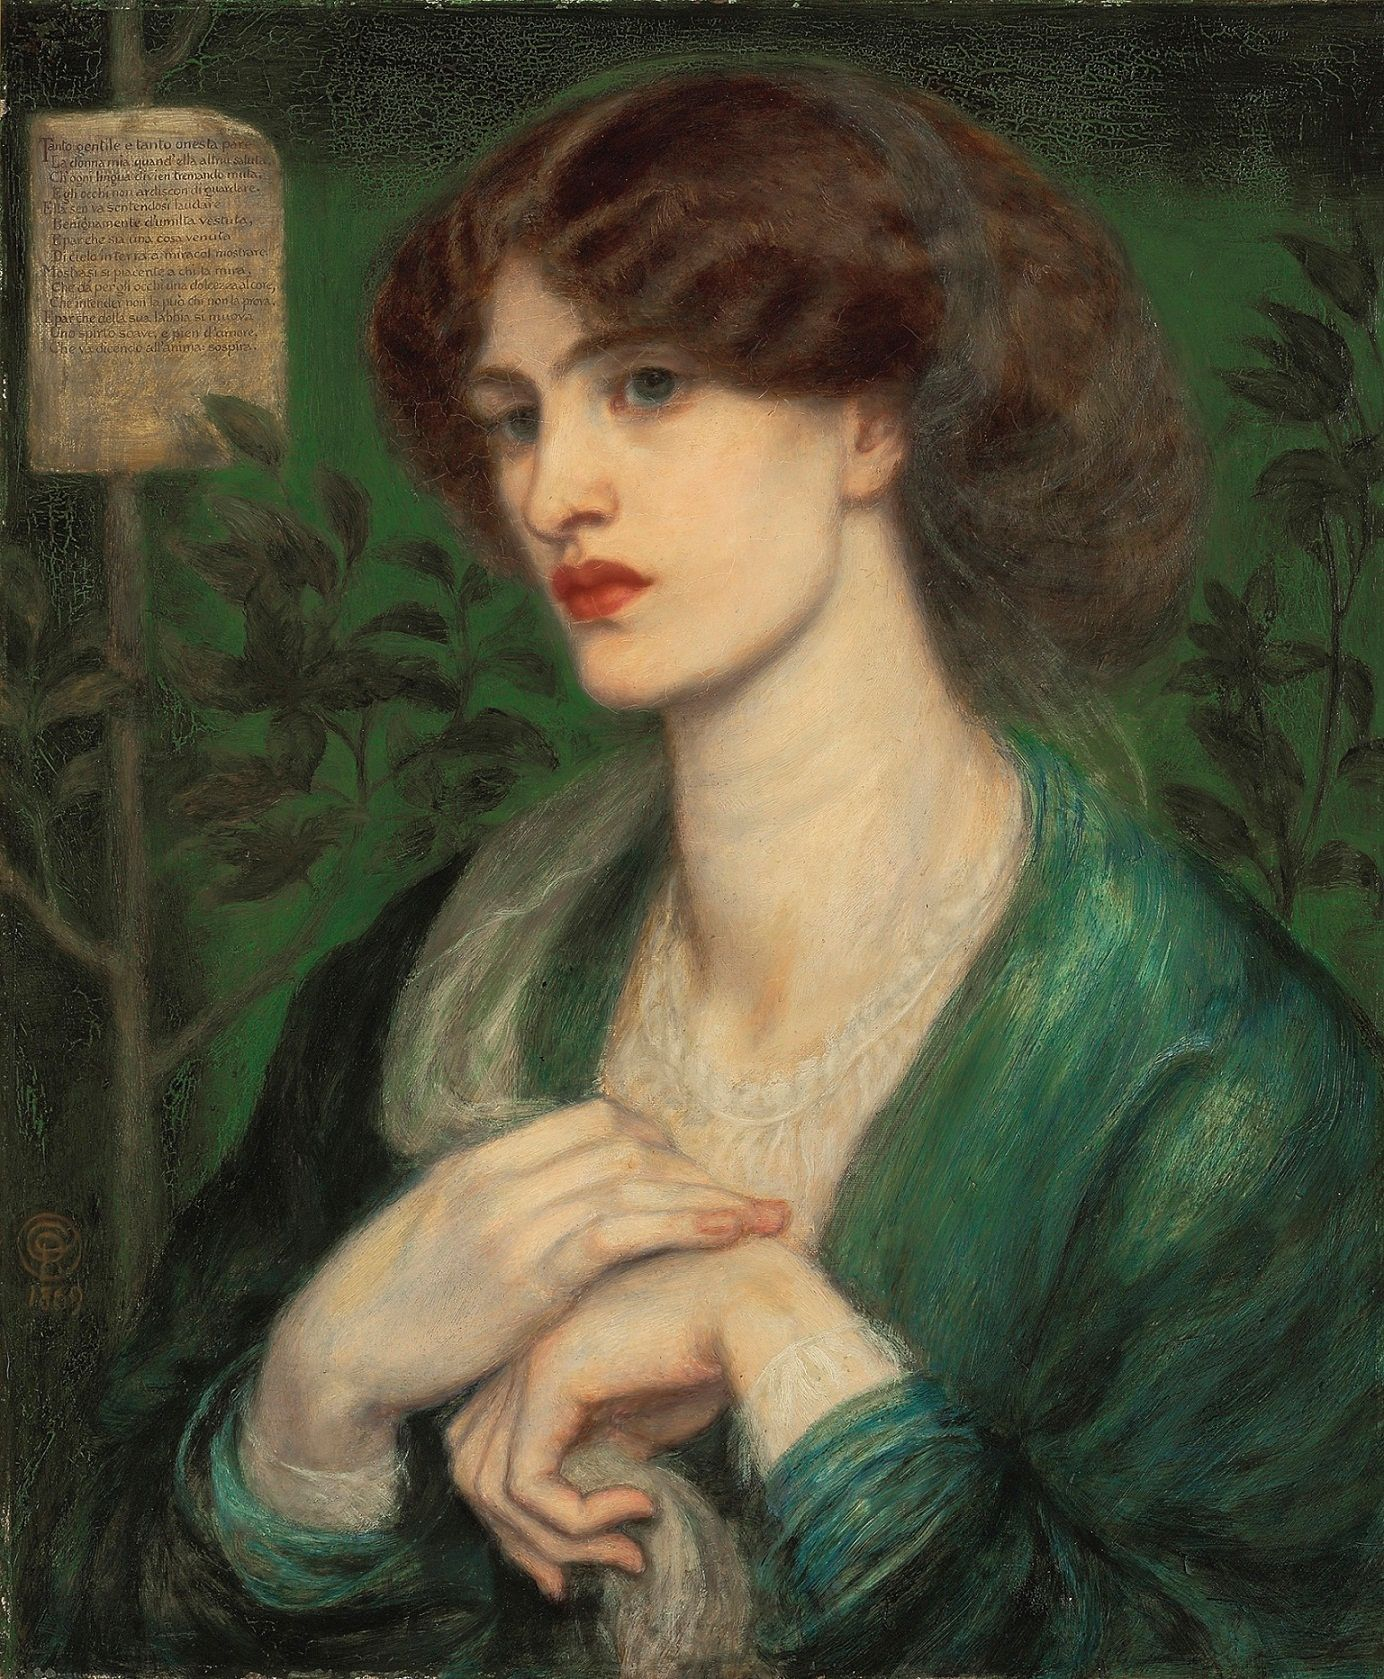 https://upload.wikimedia.org/wikipedia/commons/5/50/Dante_Gabriel_Rossetti_The_Salutation_of_Beatrice_1869.jpg